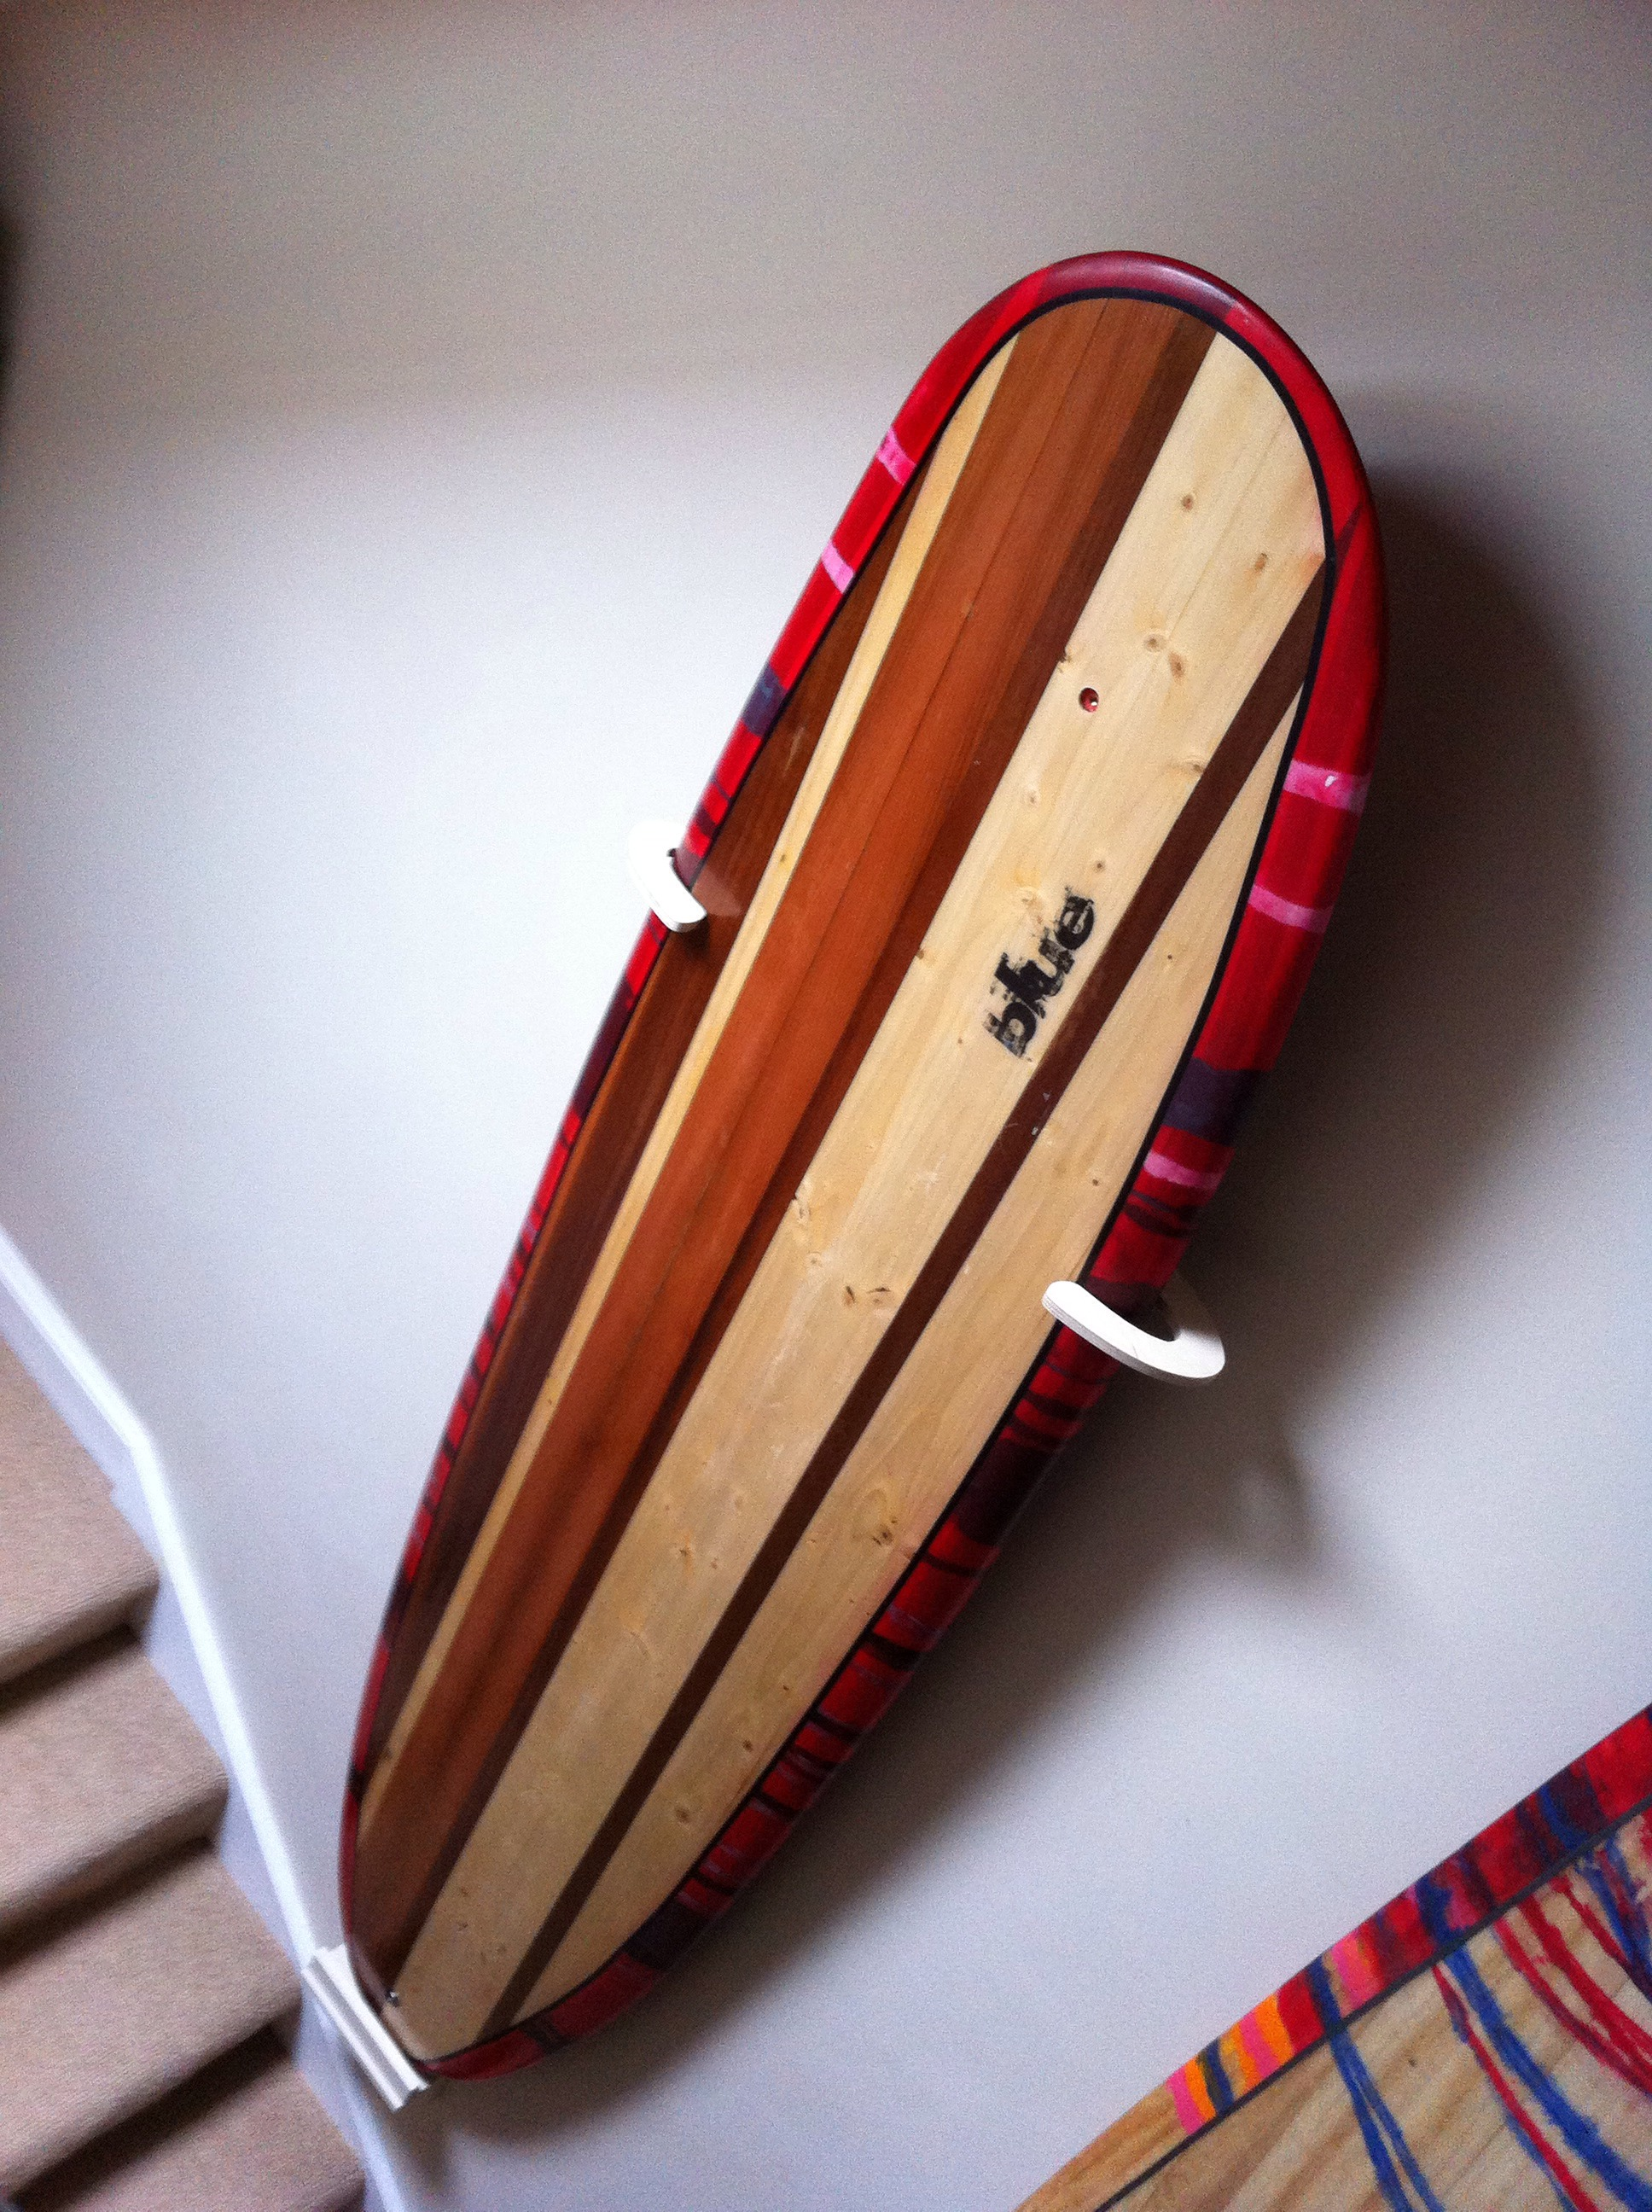 Hollow Wooden Surfboard - my Magic Carpet